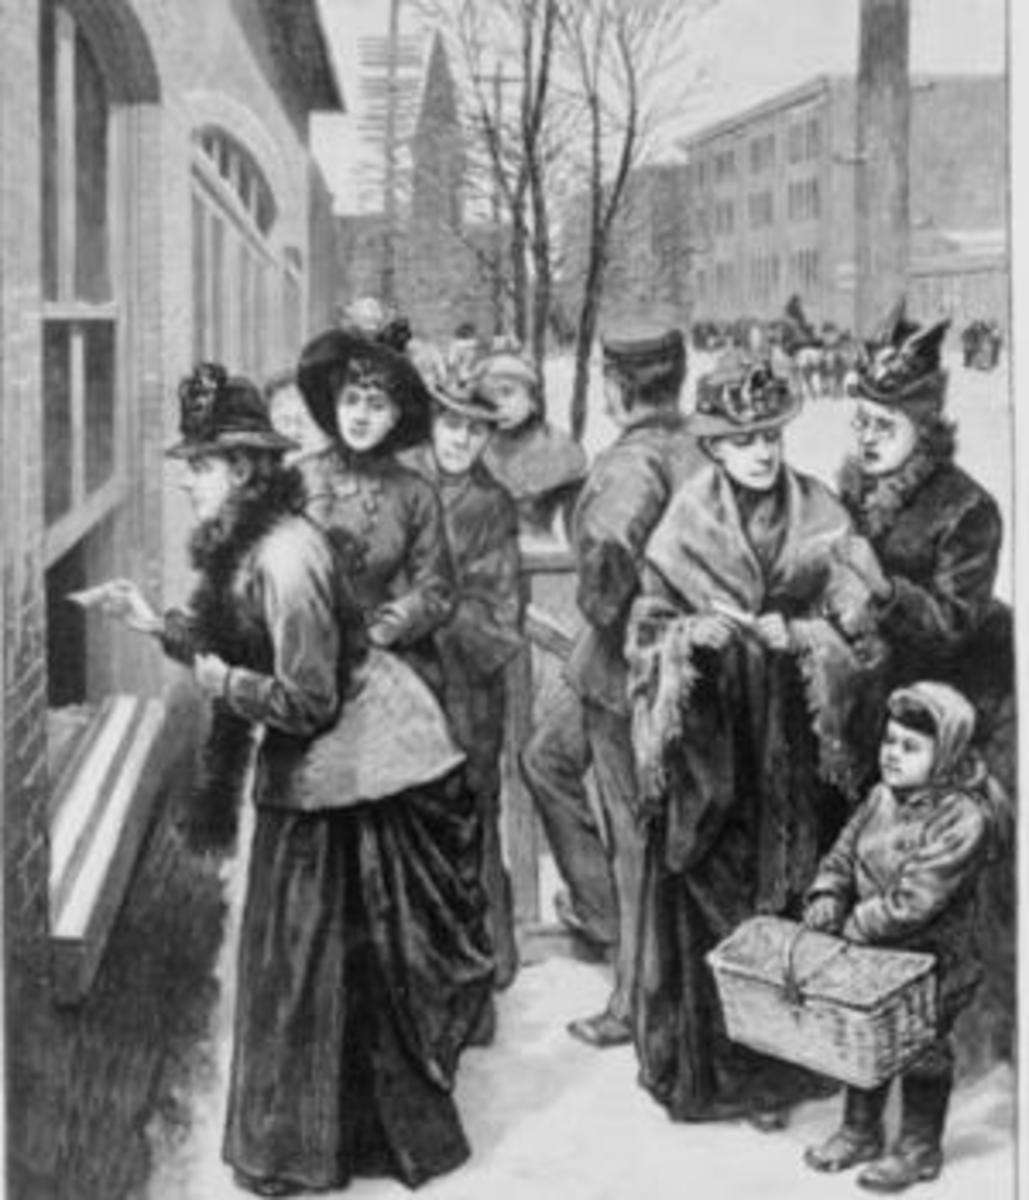 19th amendment, women's suffrage